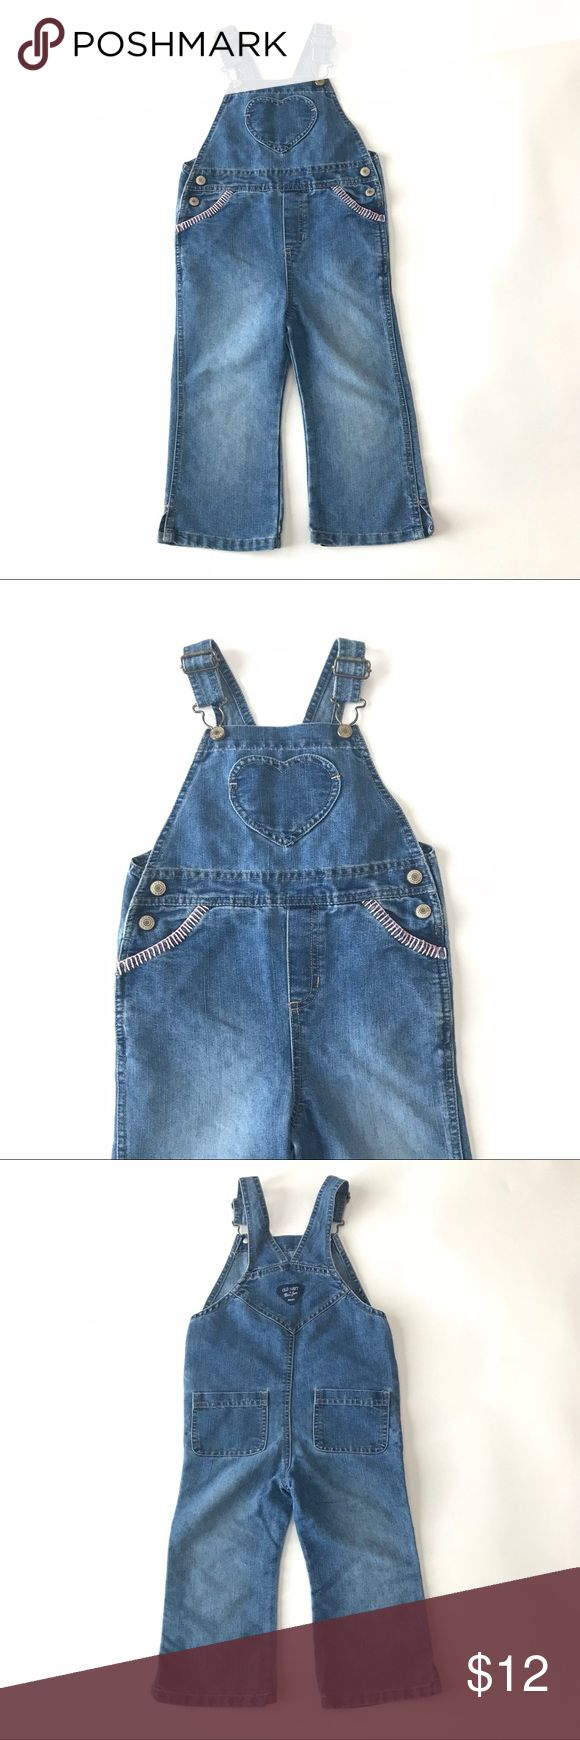 Girls 3t old navy denim overall capris heart Girls 3t old navy denim overall capris heart No stains or defects Smoke free home Old Navy Bottoms Overalls